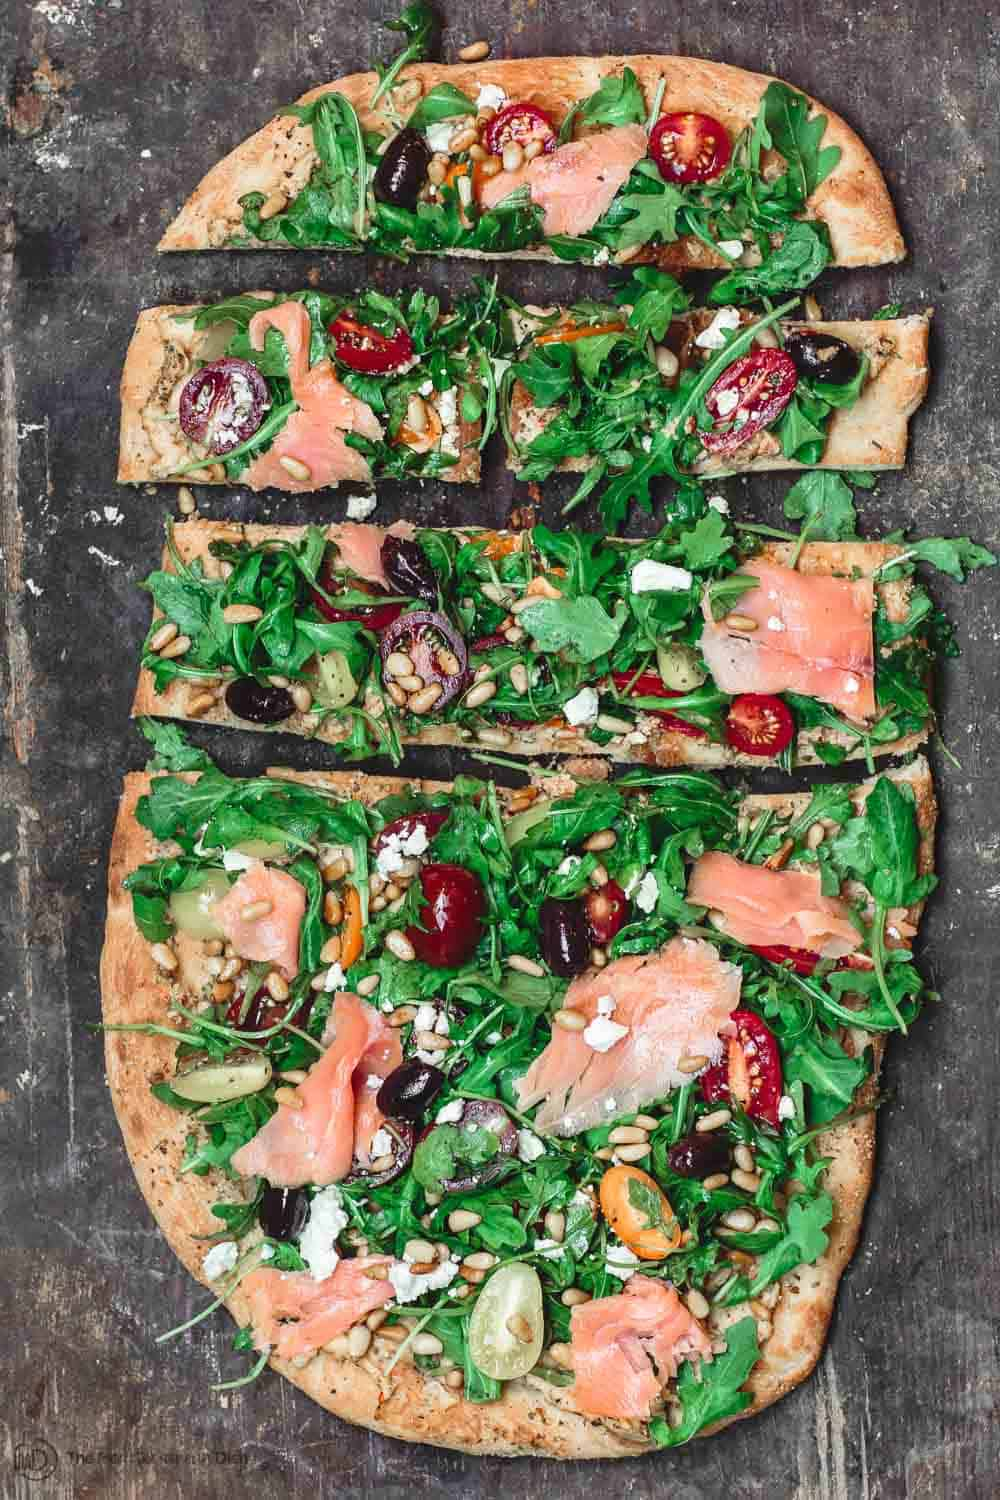 Flatbread with hummus, arugula, tomatoes, smoked salmon and more. Sliced in small pieces to serve as appetizer